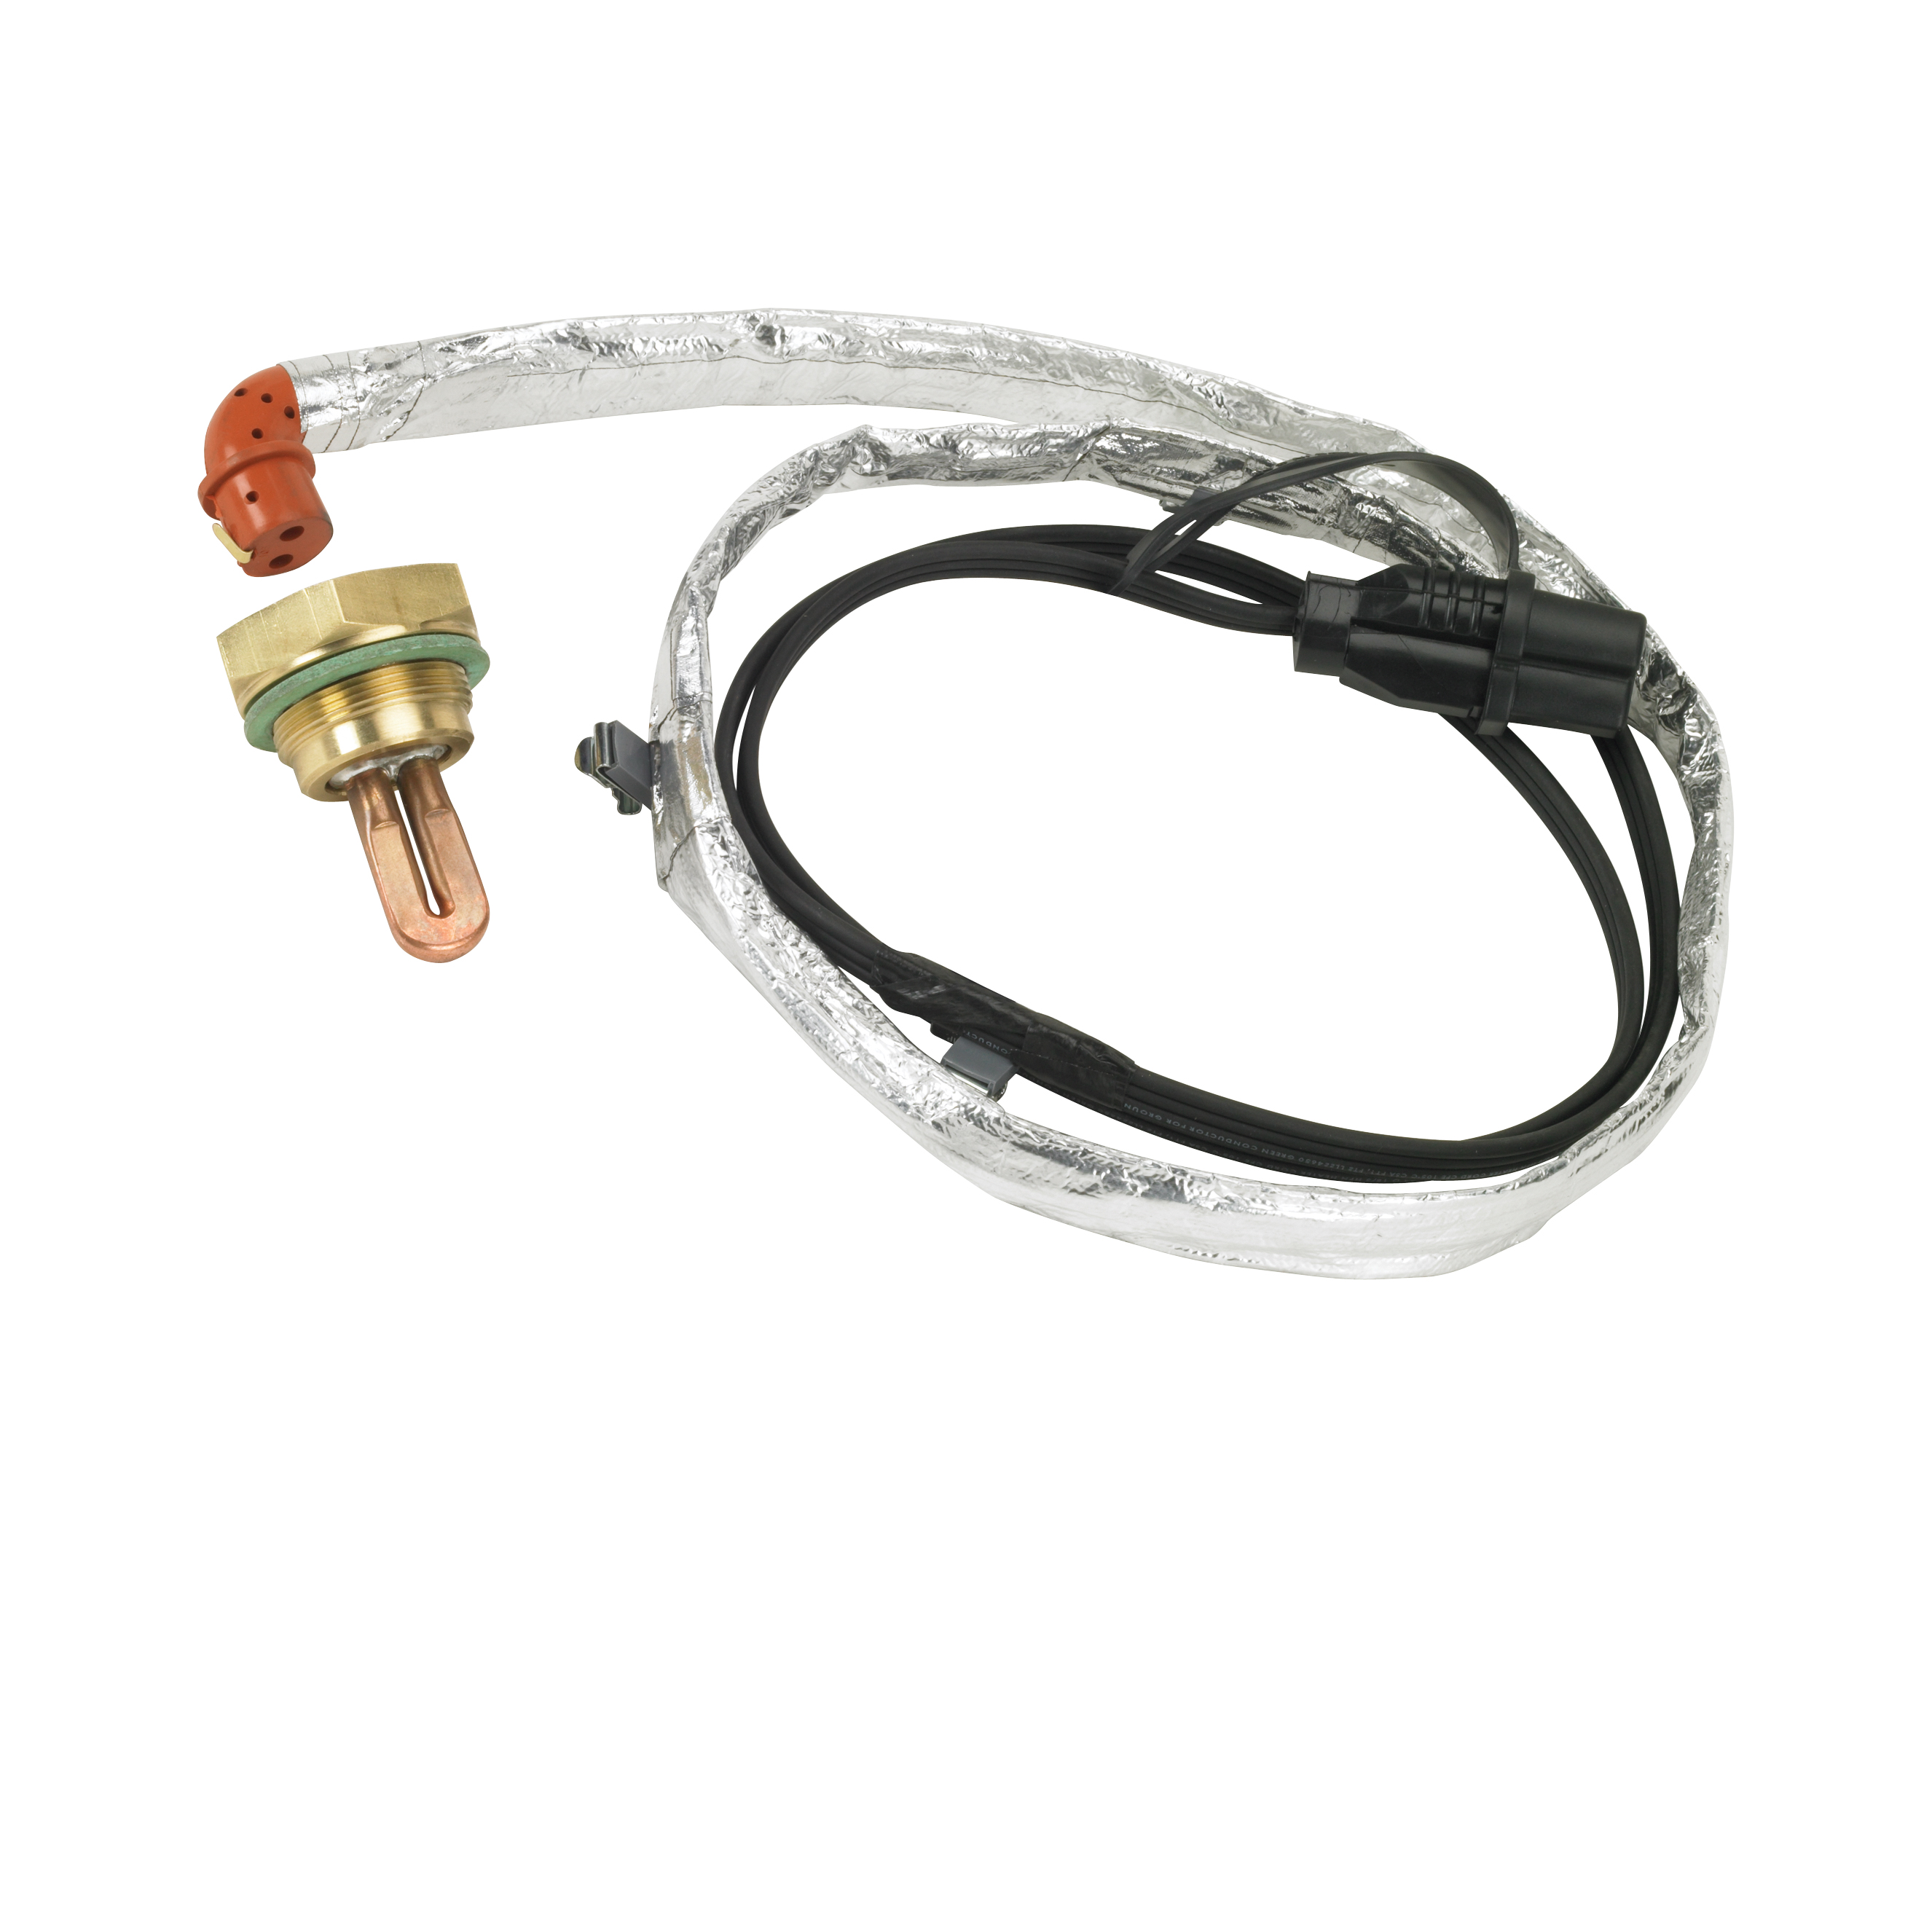 Subaru Wrx Engine Block Heater